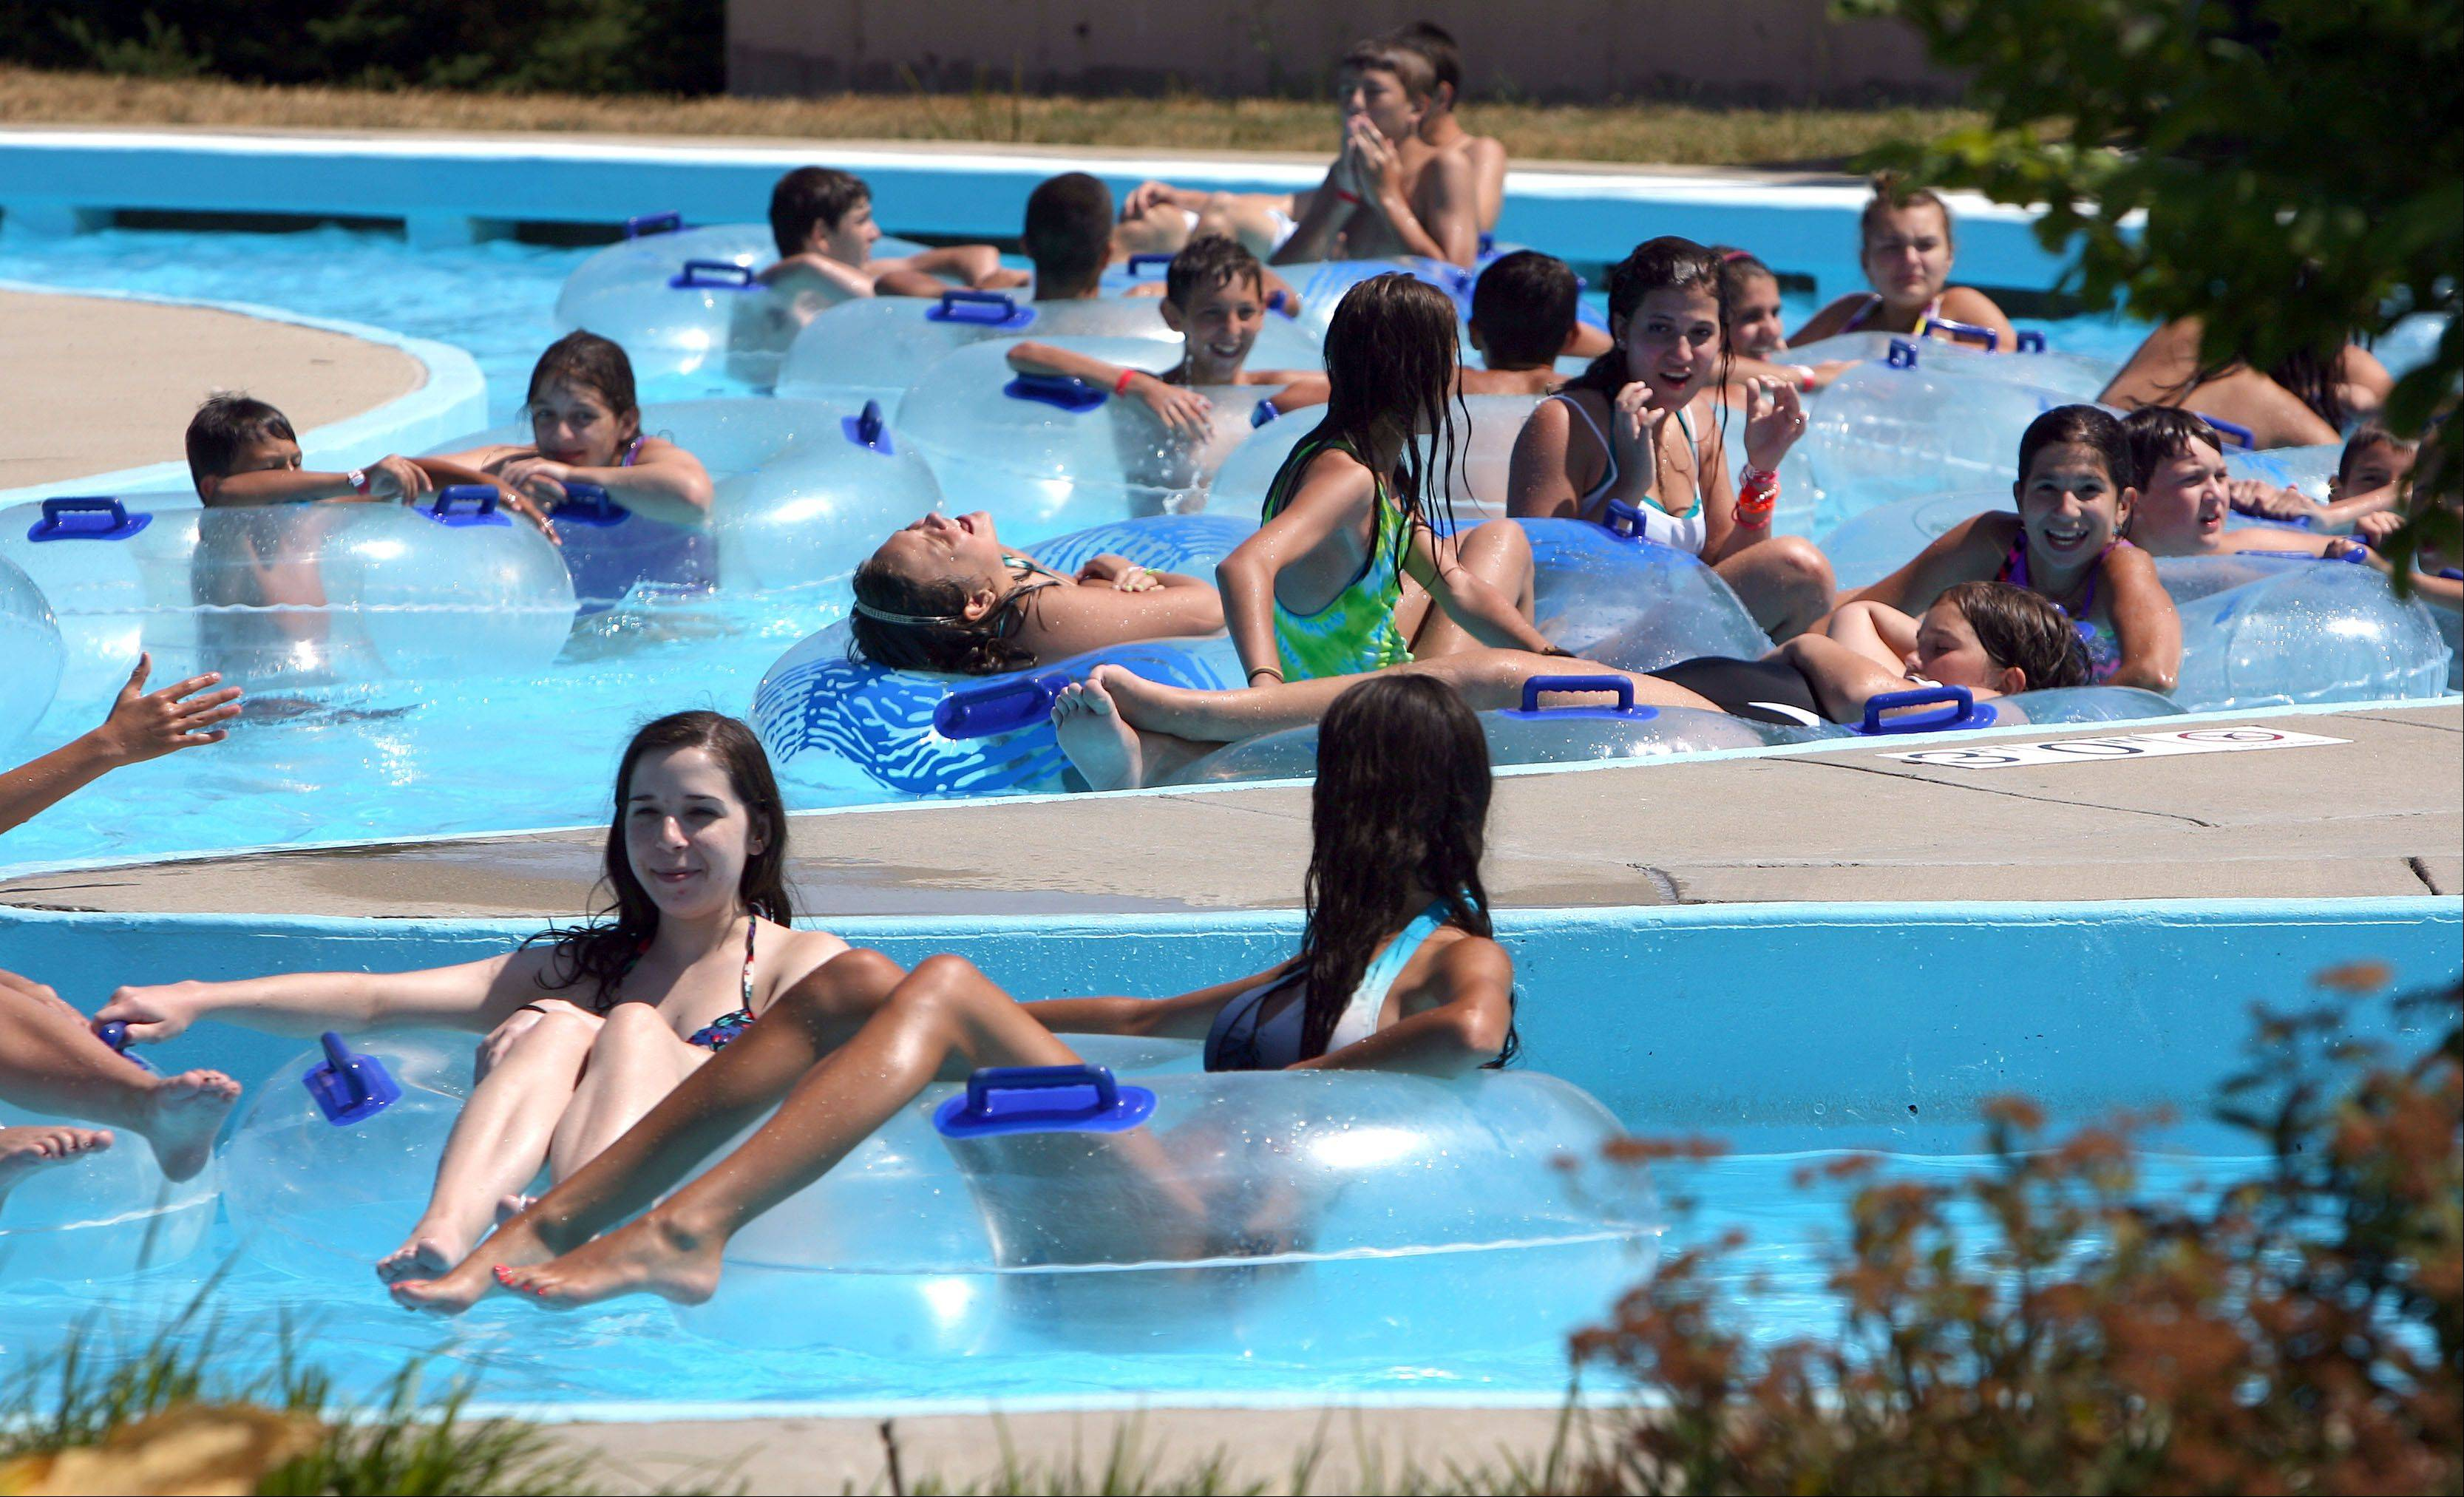 Kids float on tubes in the lazy river Tuesday at Barefoot Bay Family Aquatic Center in Mundelein.